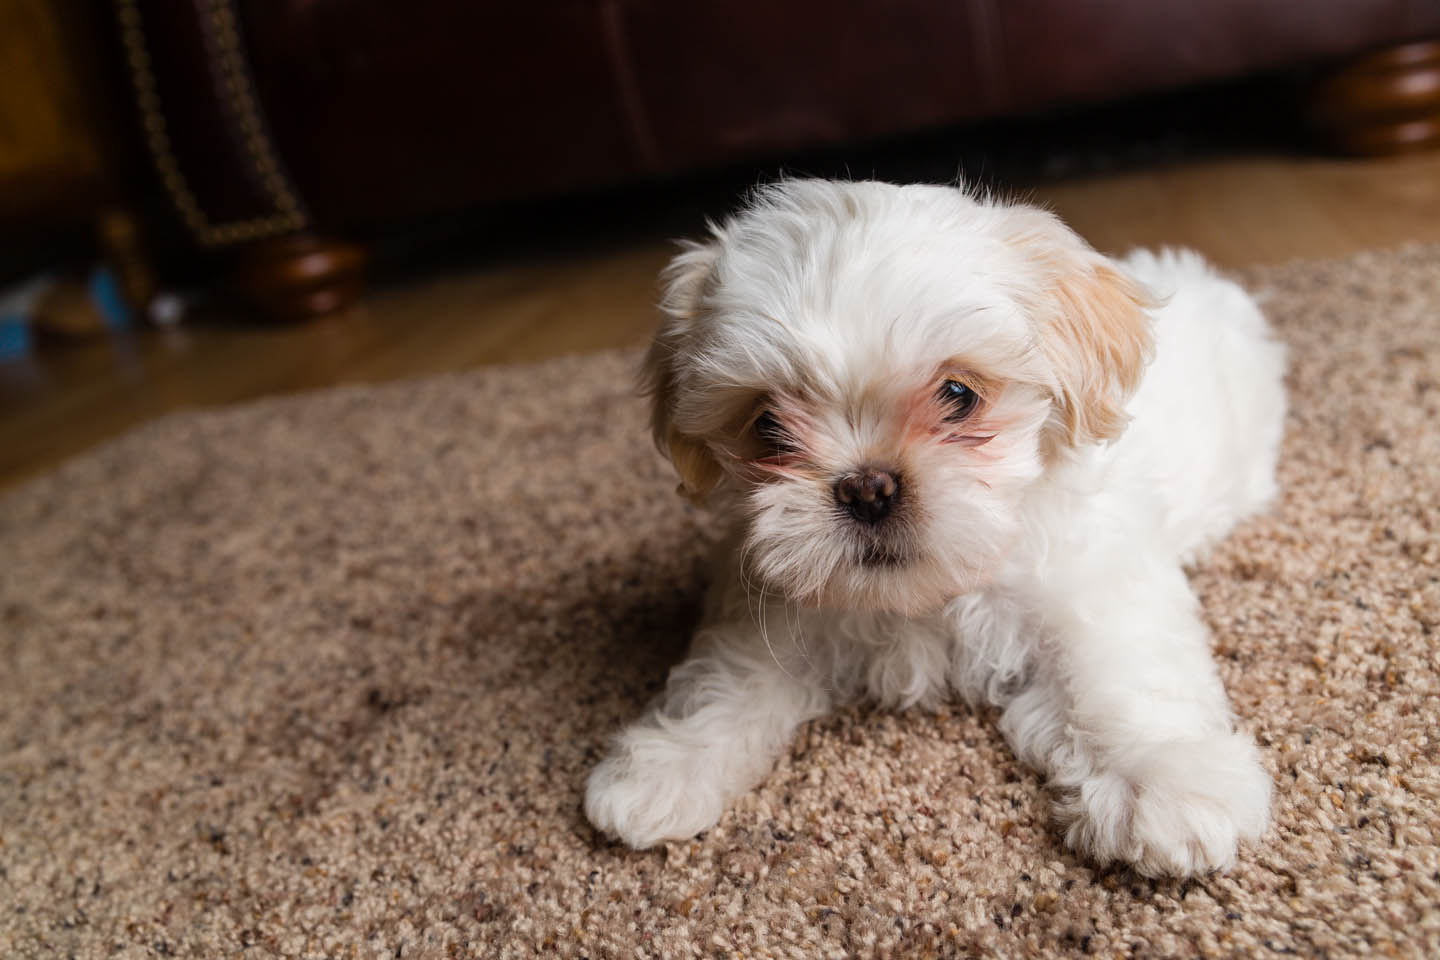 shih tzu puppies £ 400 posted 1 year ago for sale dogs shih